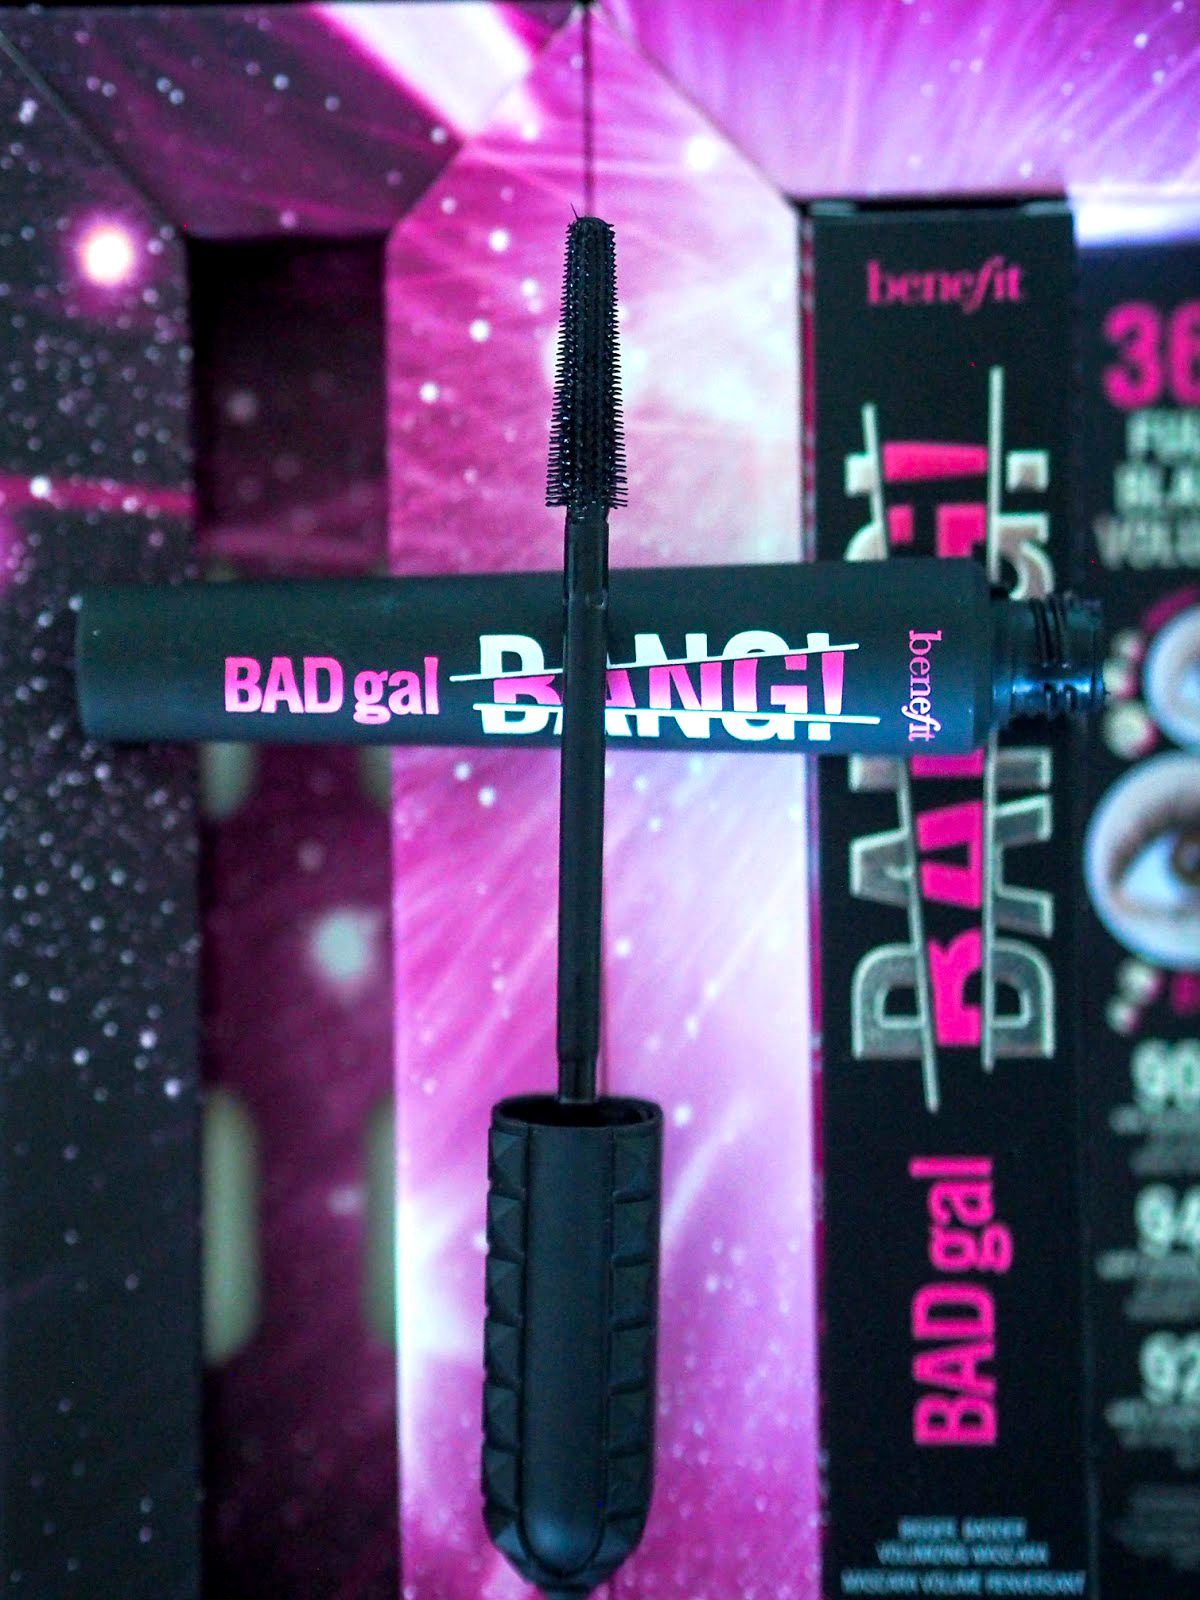 Benefit BADgal BANG mascara review - Curated by Kirstie is a Leicester beauty, fragrance + gluten free food blogger